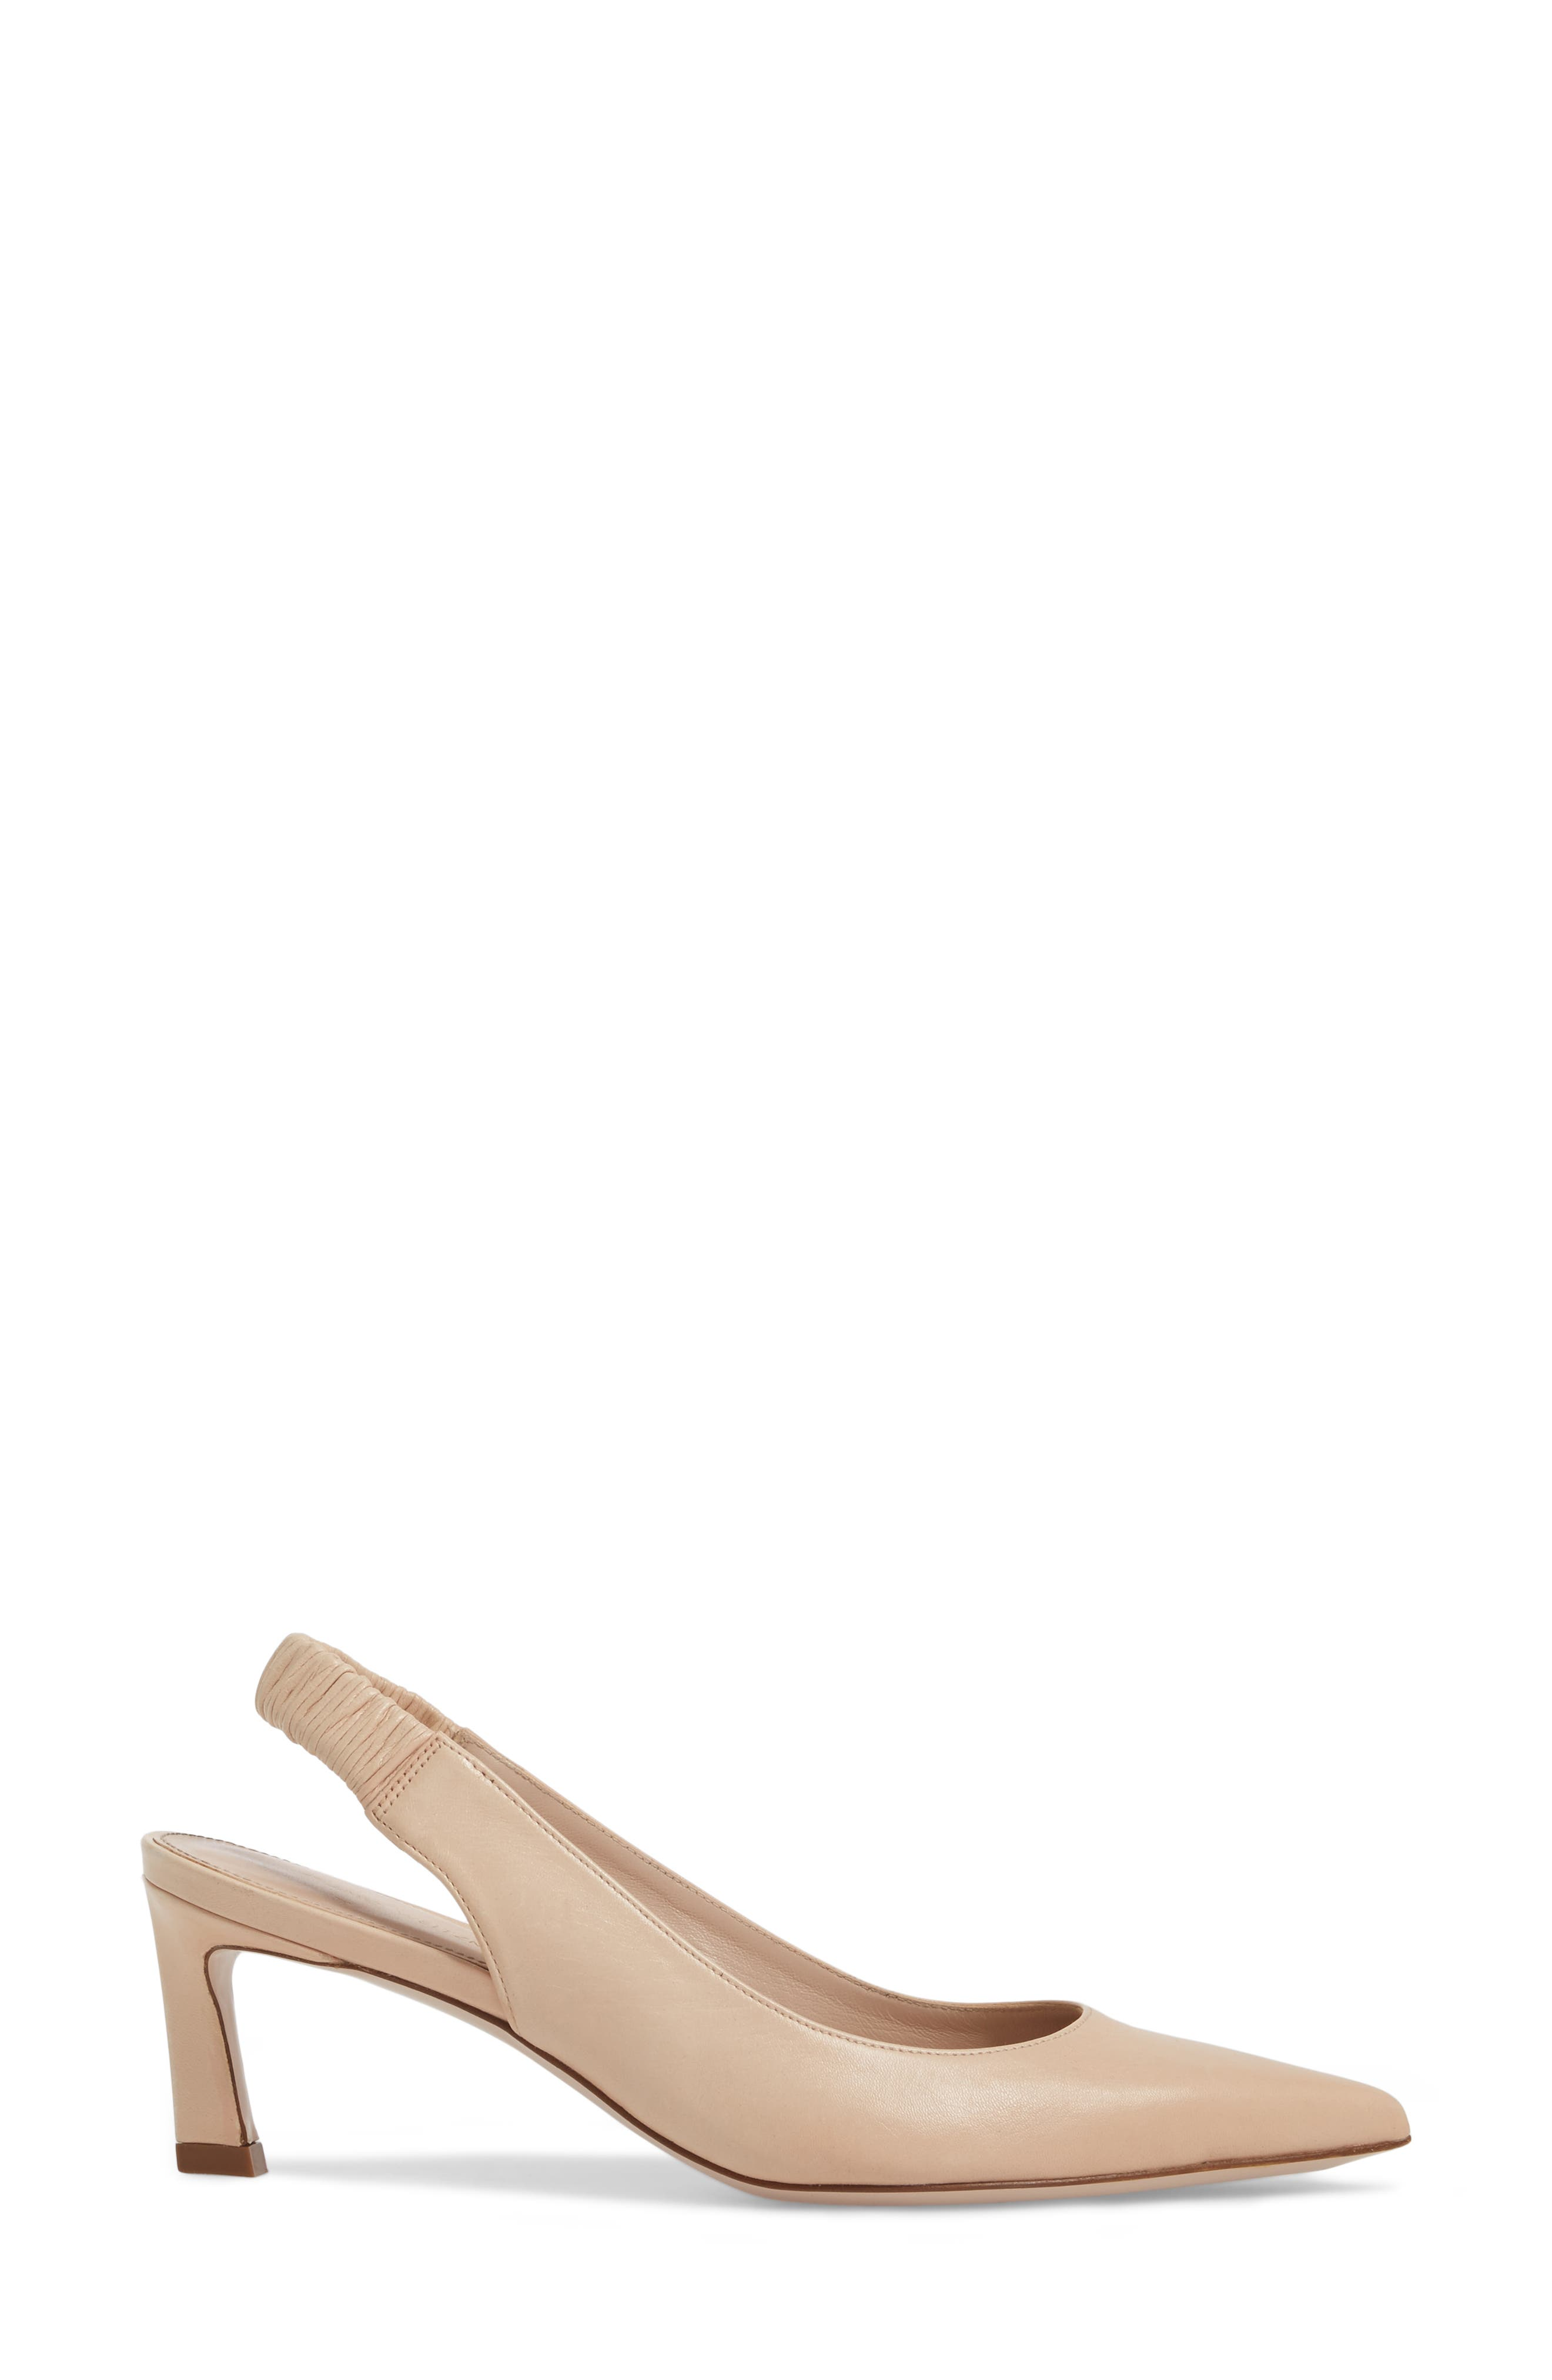 Hayday Slingback Pump,                             Alternate thumbnail 11, color,